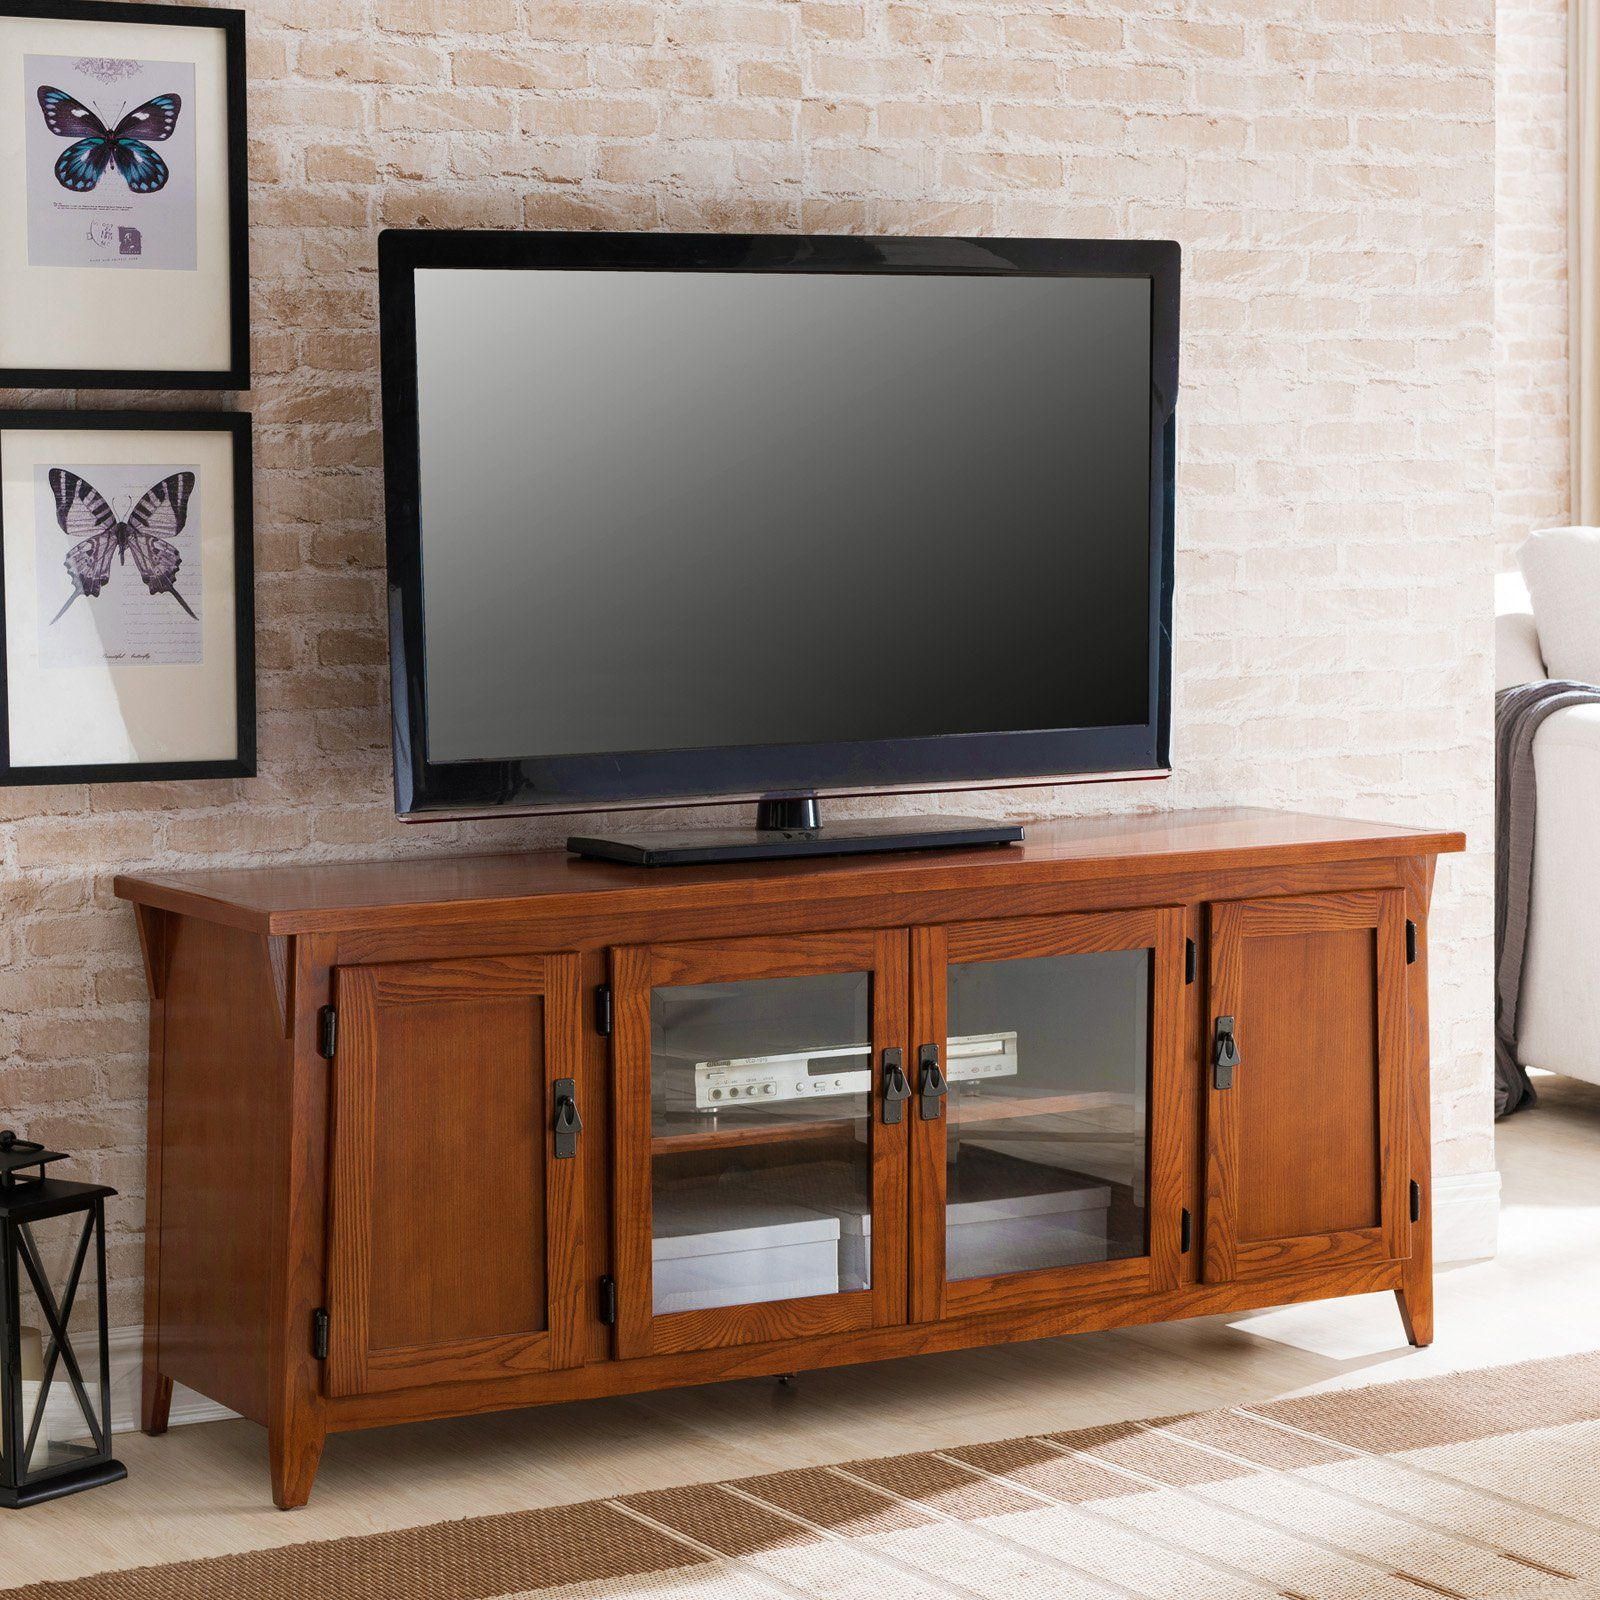 Leick Furniture Canted Side 60 In 4 Door Tv Console 82560